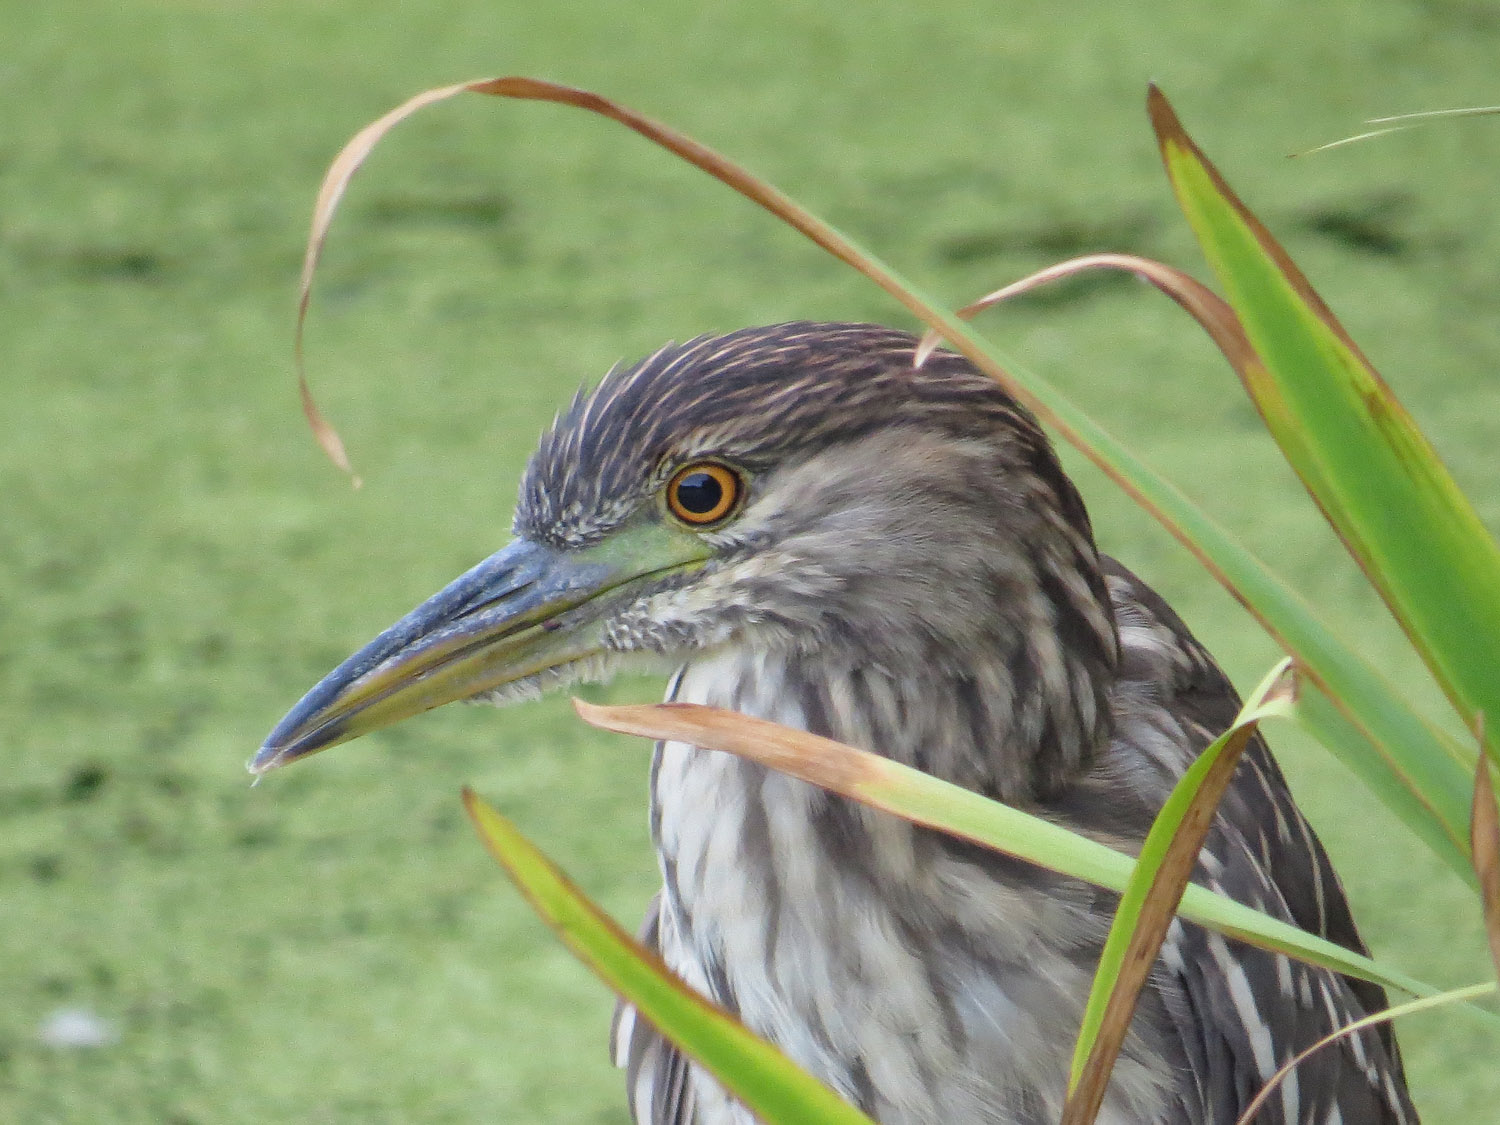 Young black-crowned night heron at Turtle Pond, Central Park, August 2, 2016